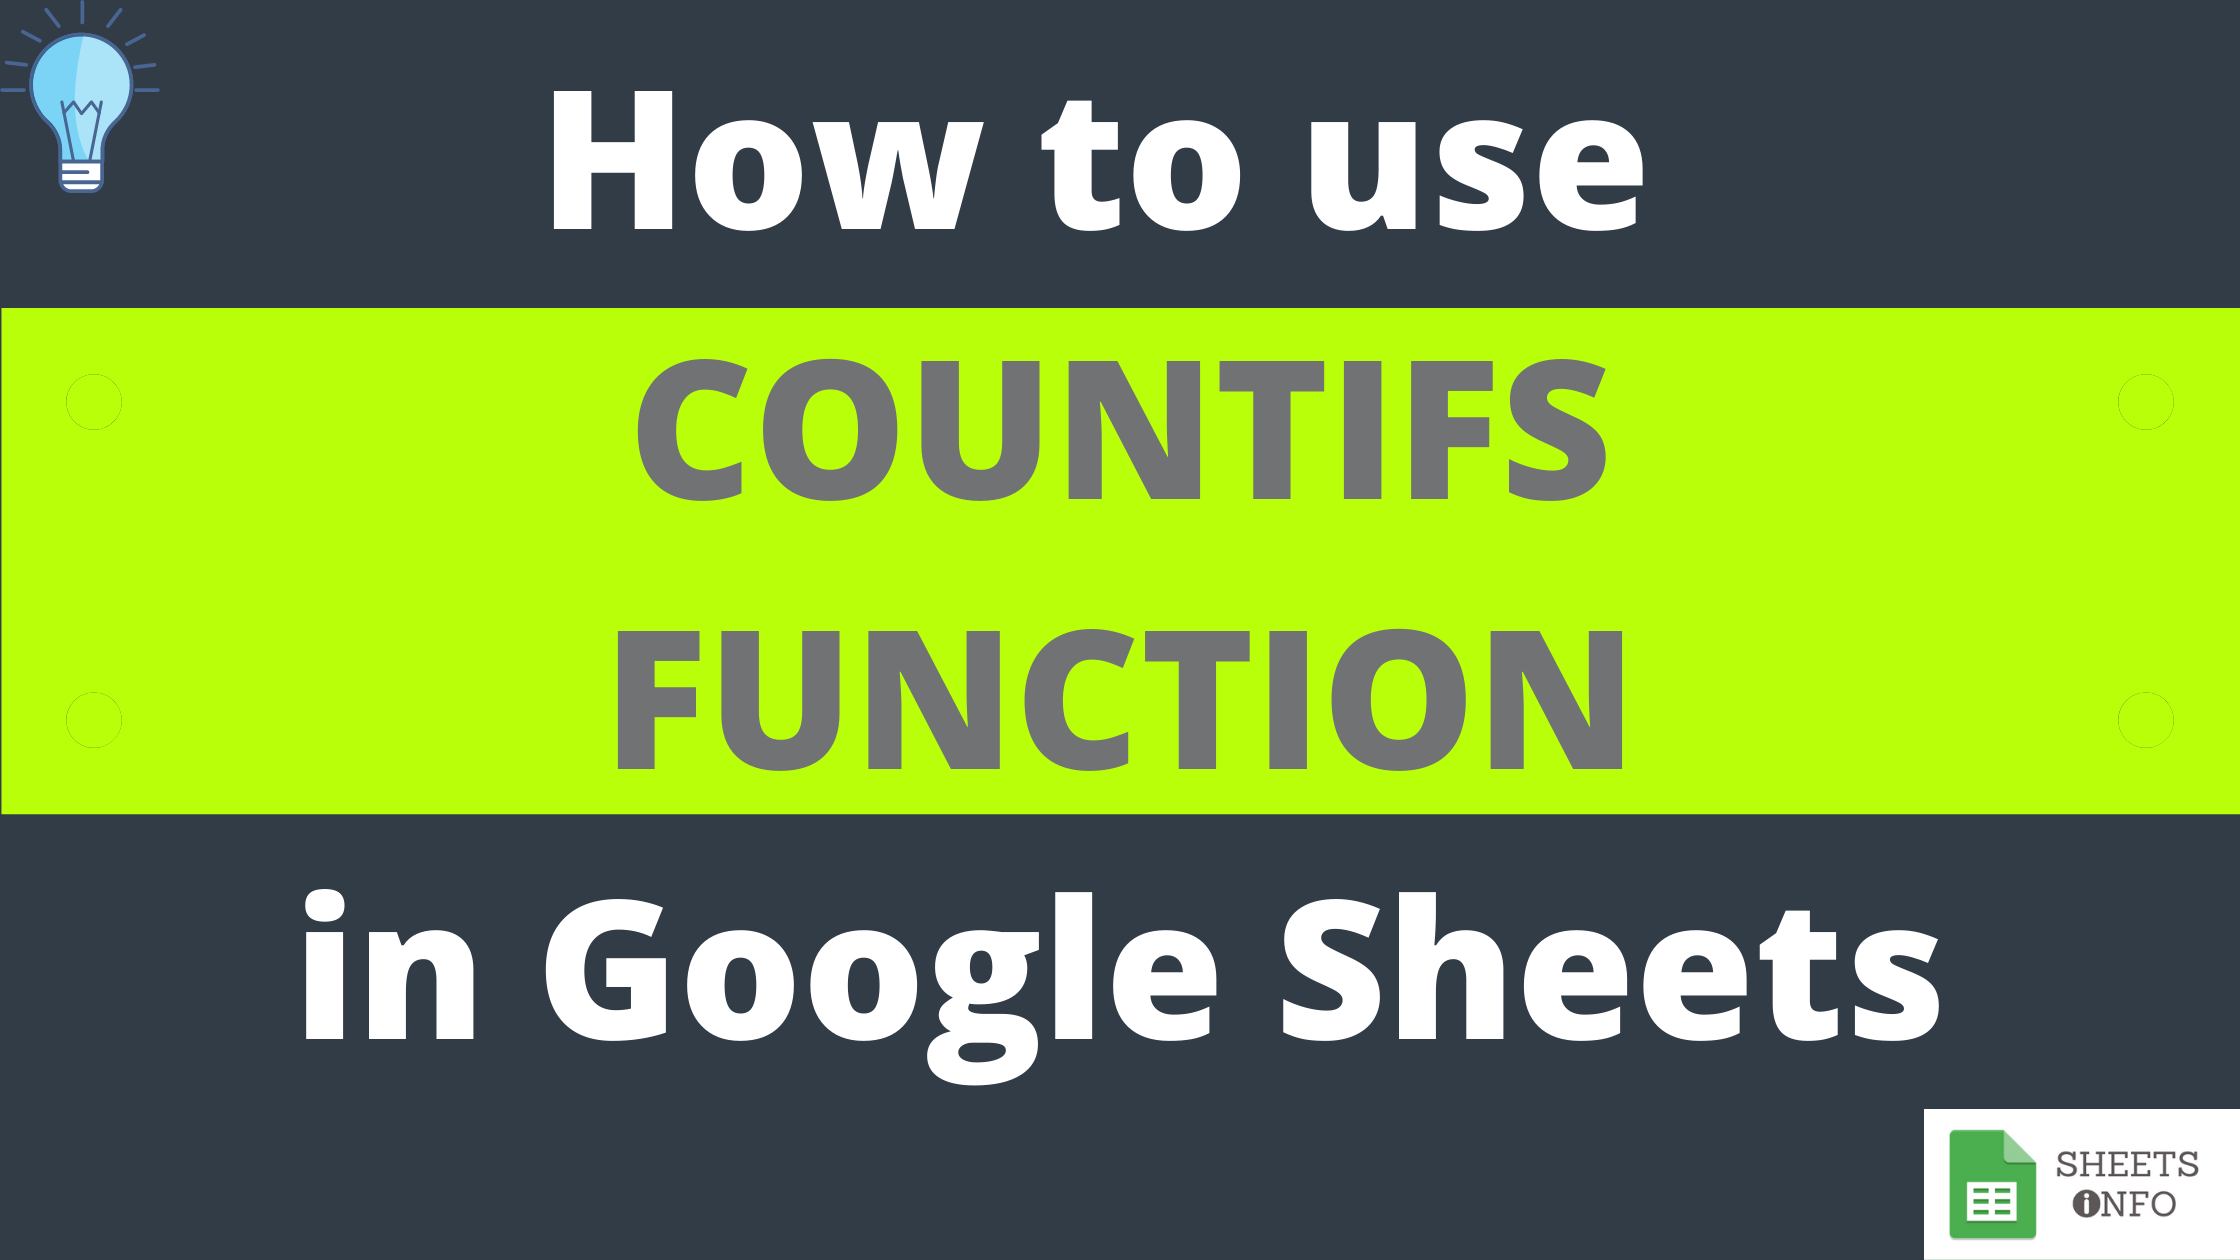 COUNTIFS Function in Google Sheets